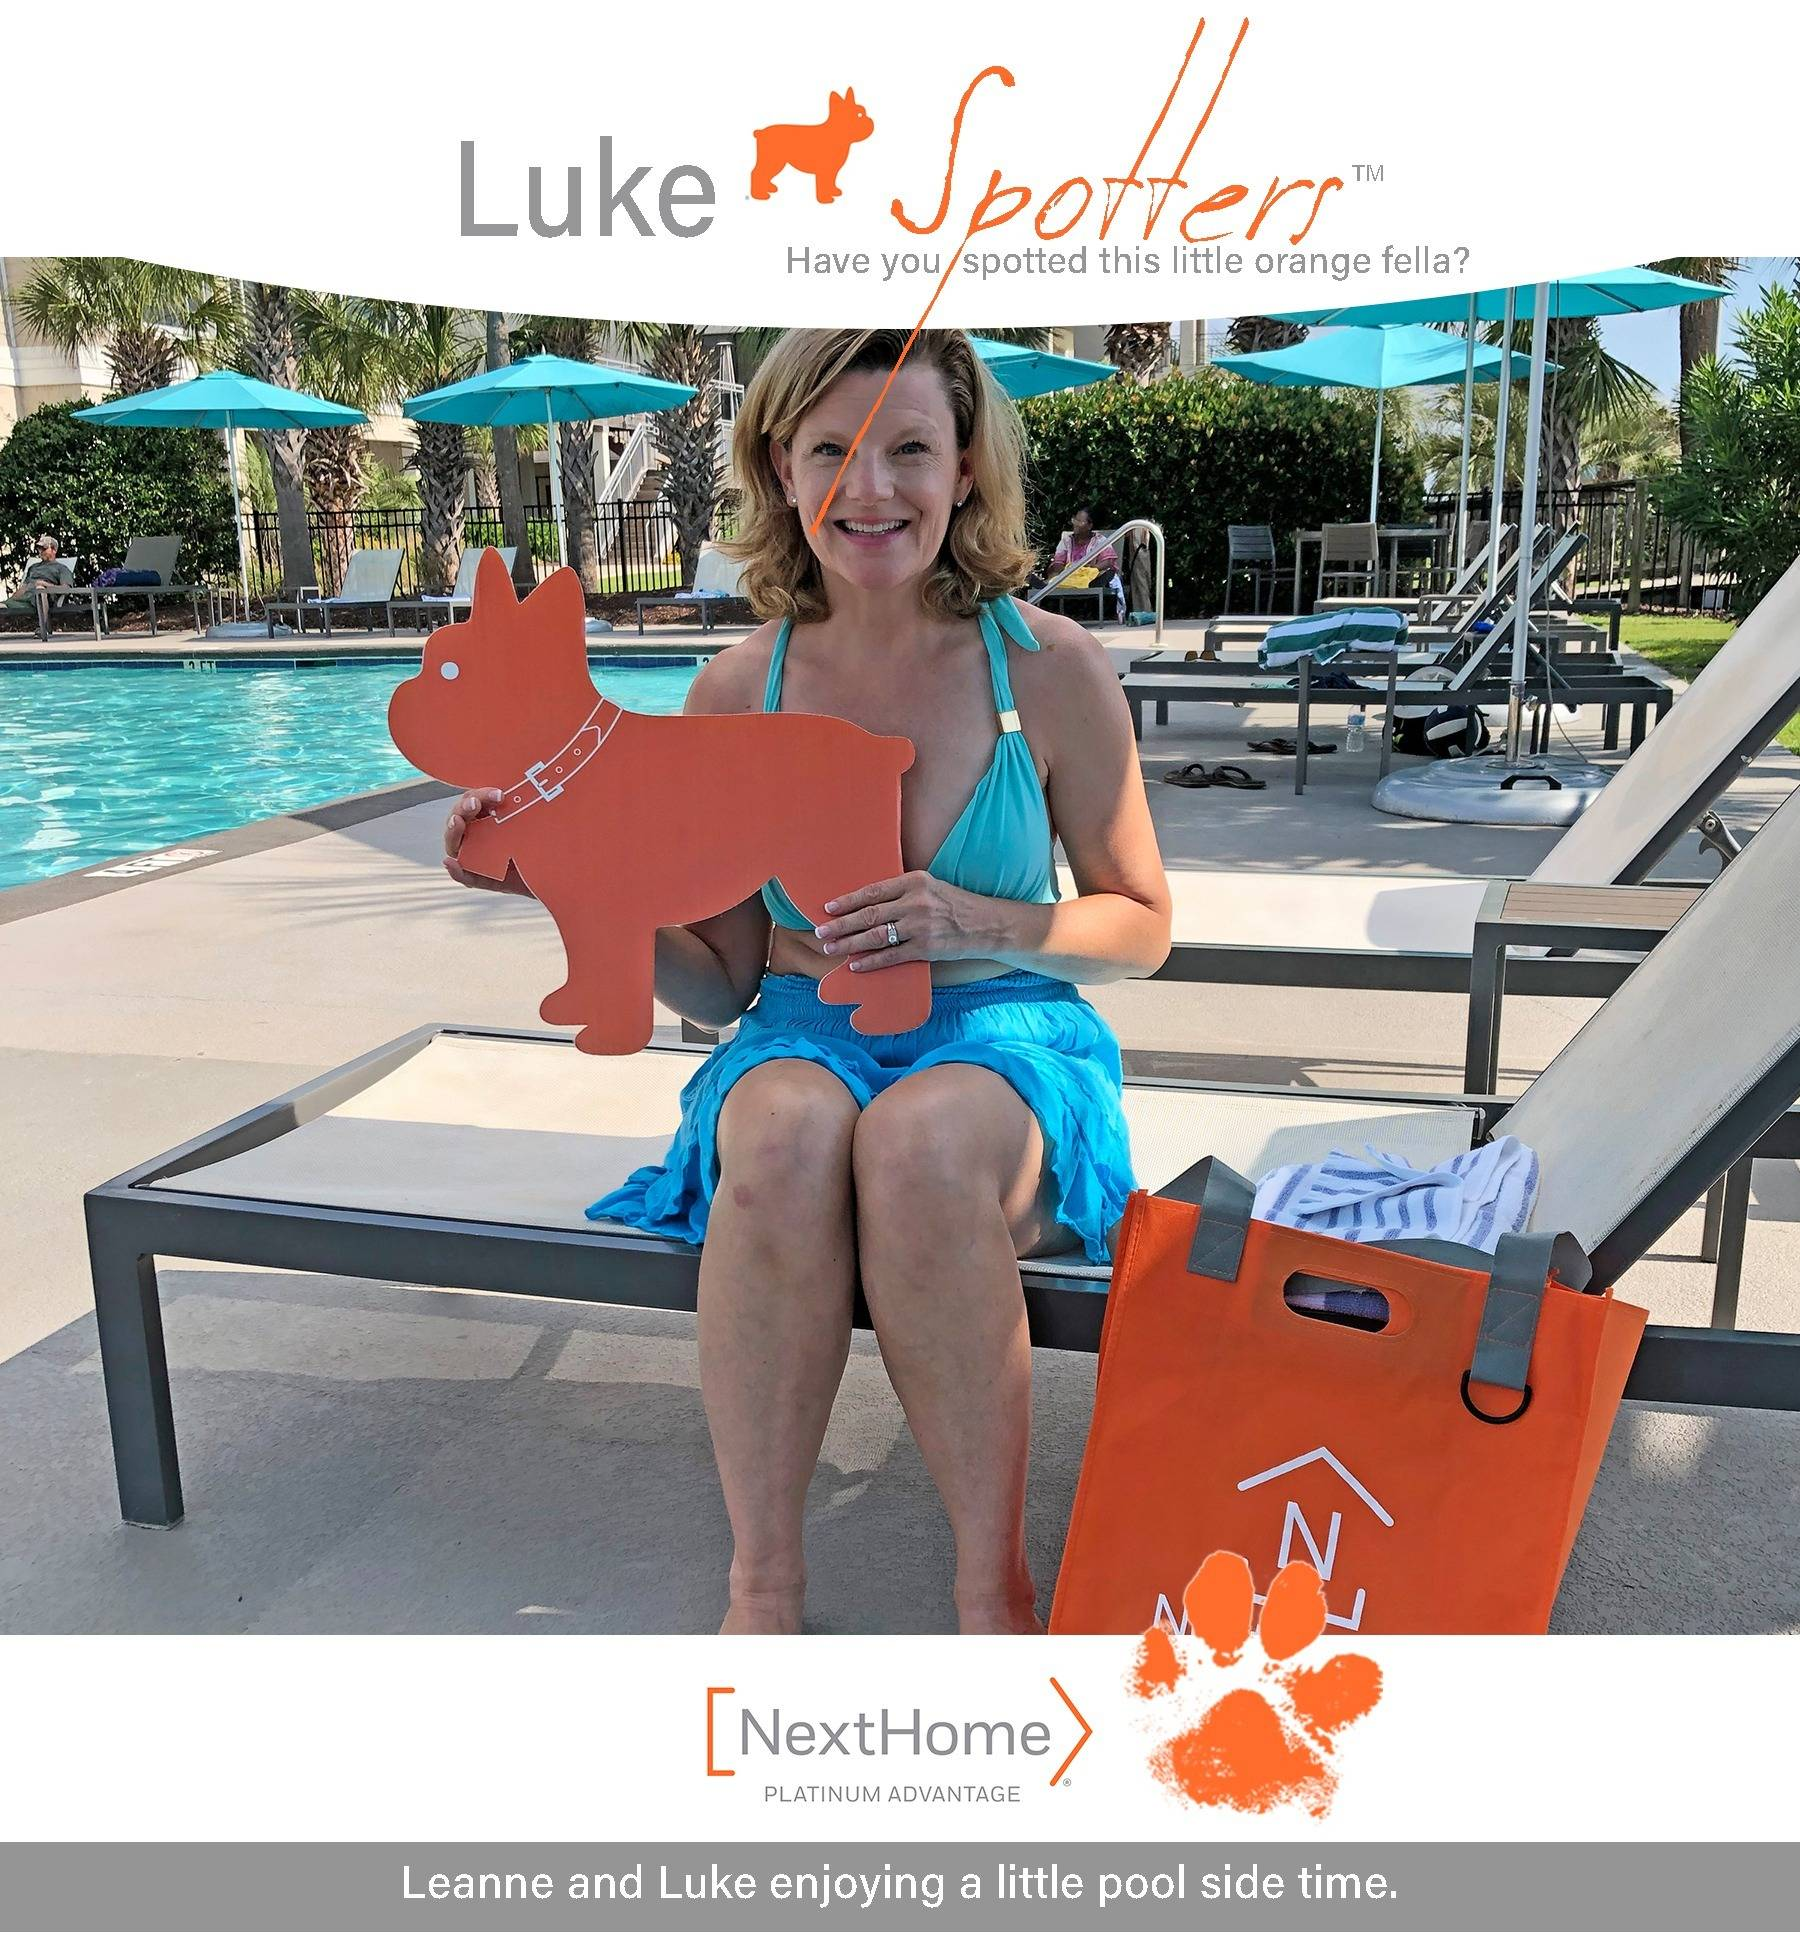 Luke Spotters - Where in the world is our little orange frenchie.